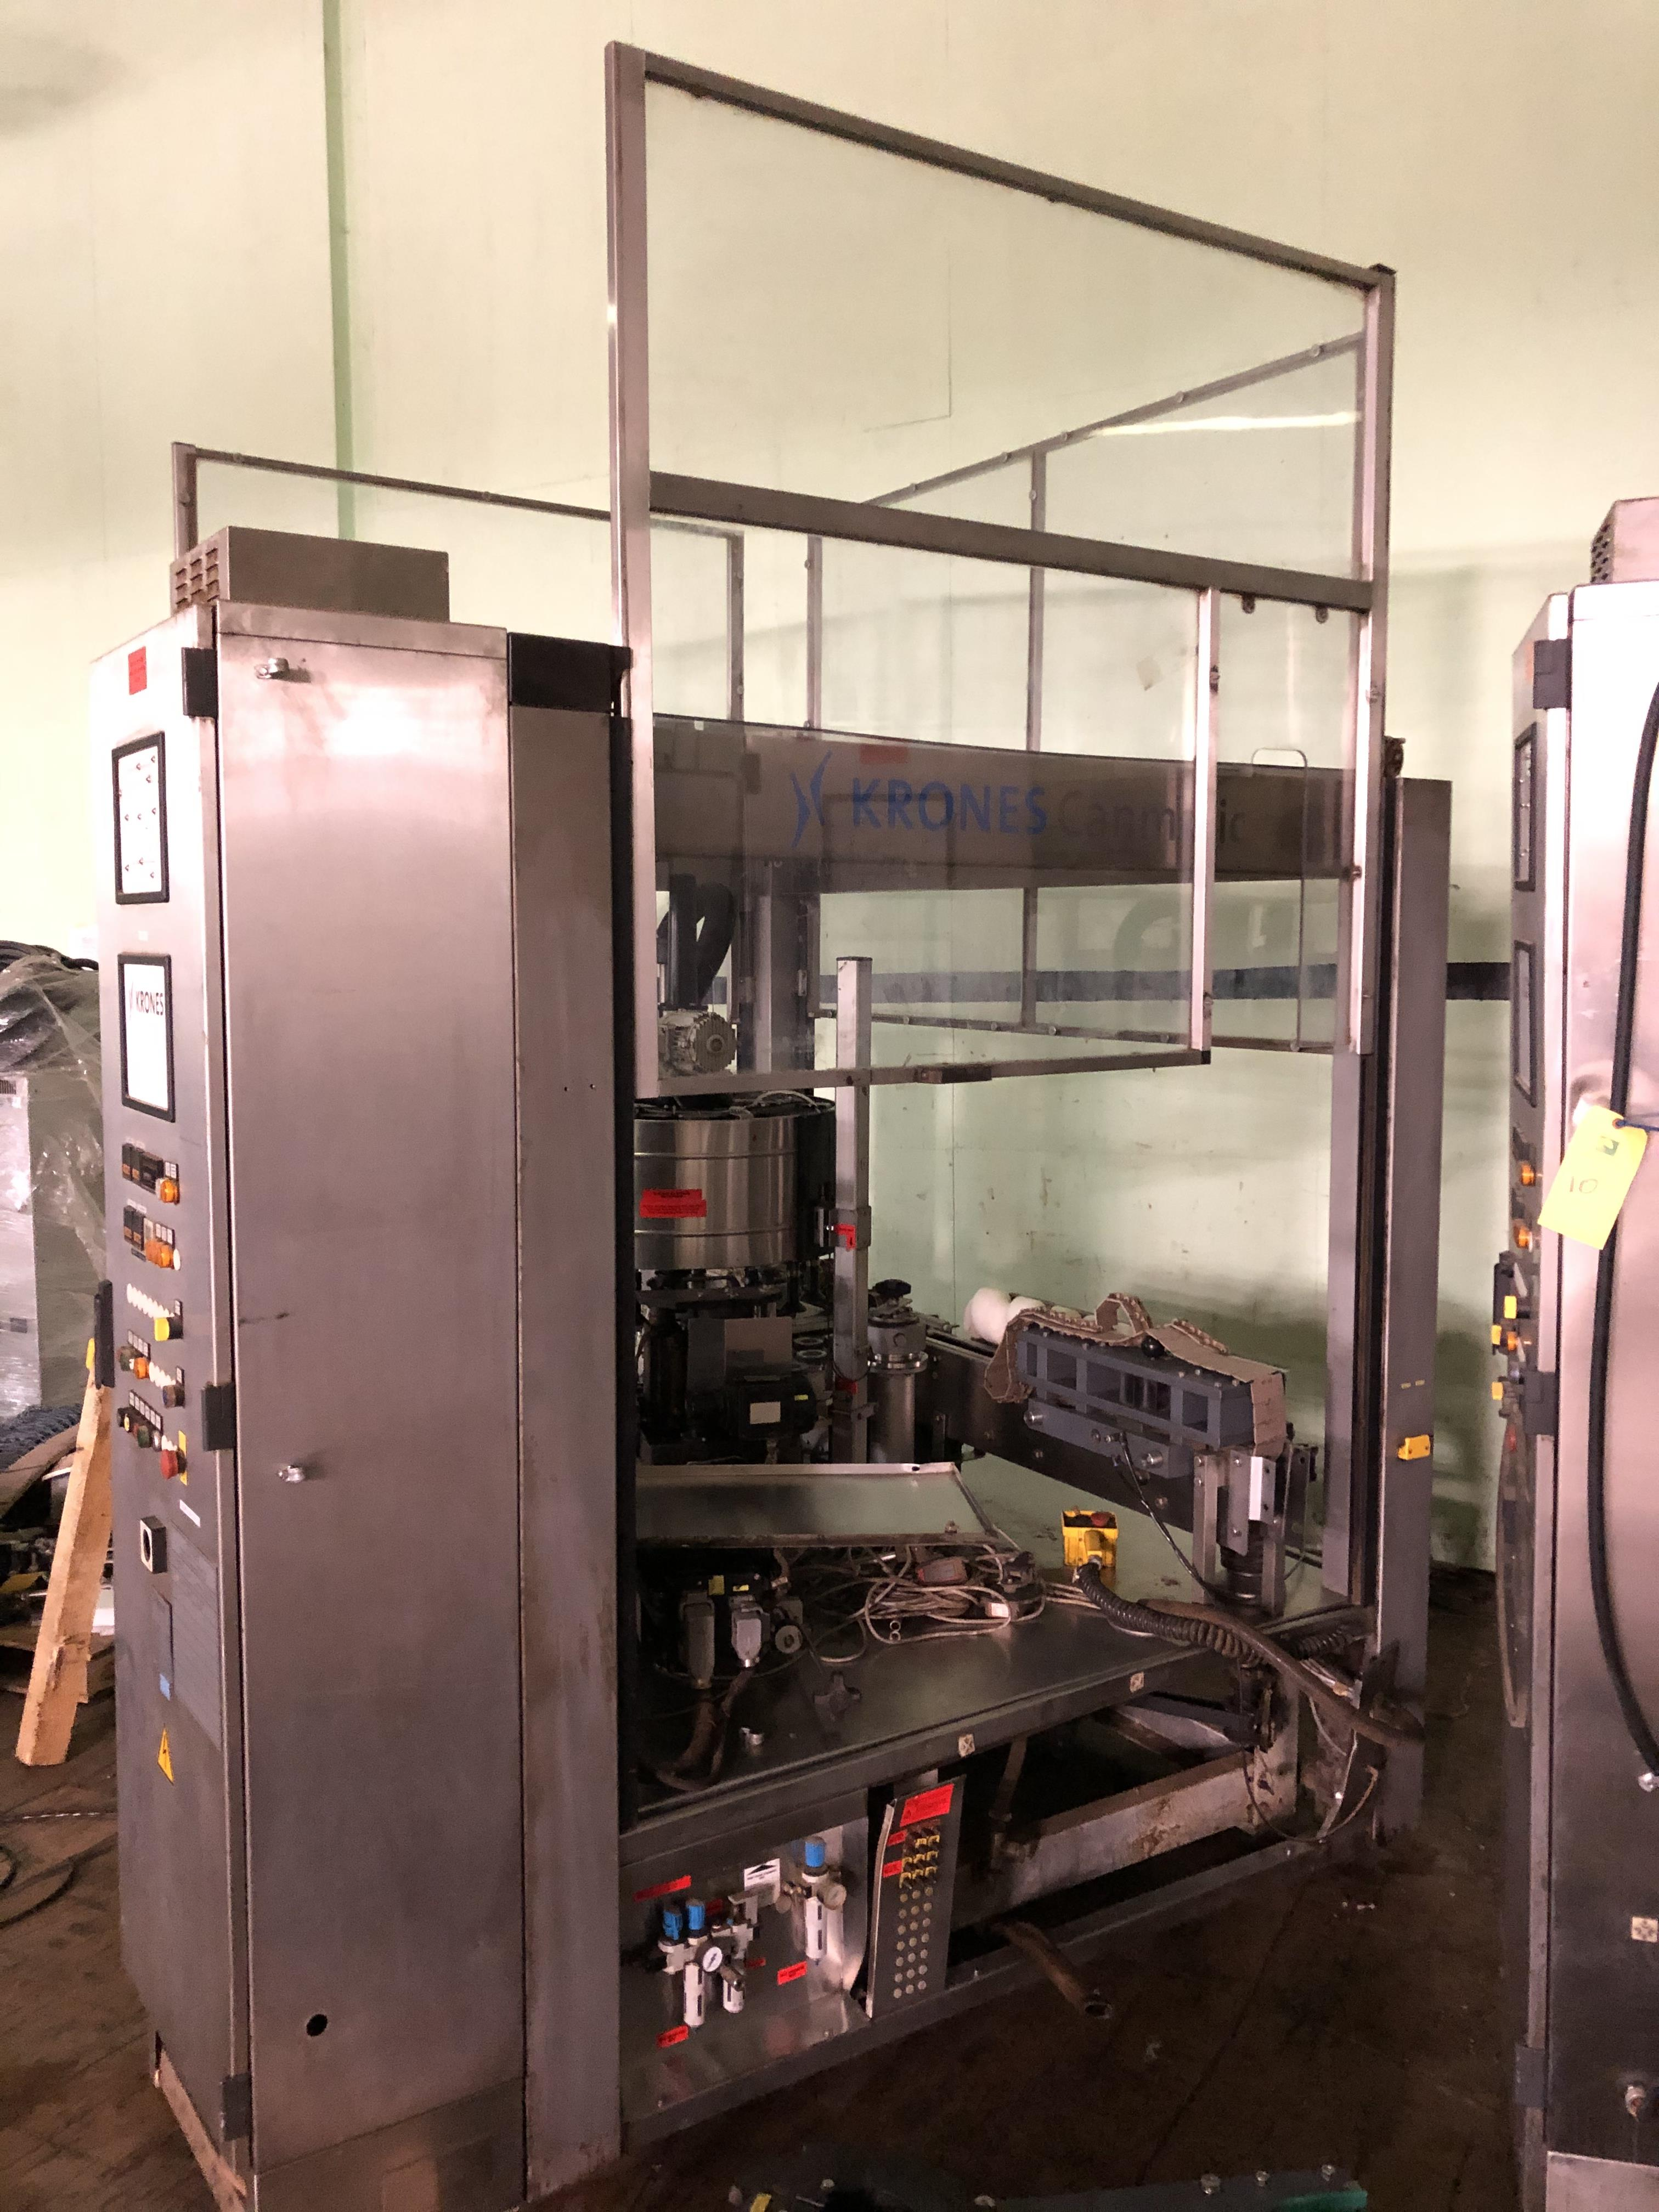 Krones Canmatic Labeler, Machine #073-Q82, RIGGING FEE - $1750 - Image 2 of 3